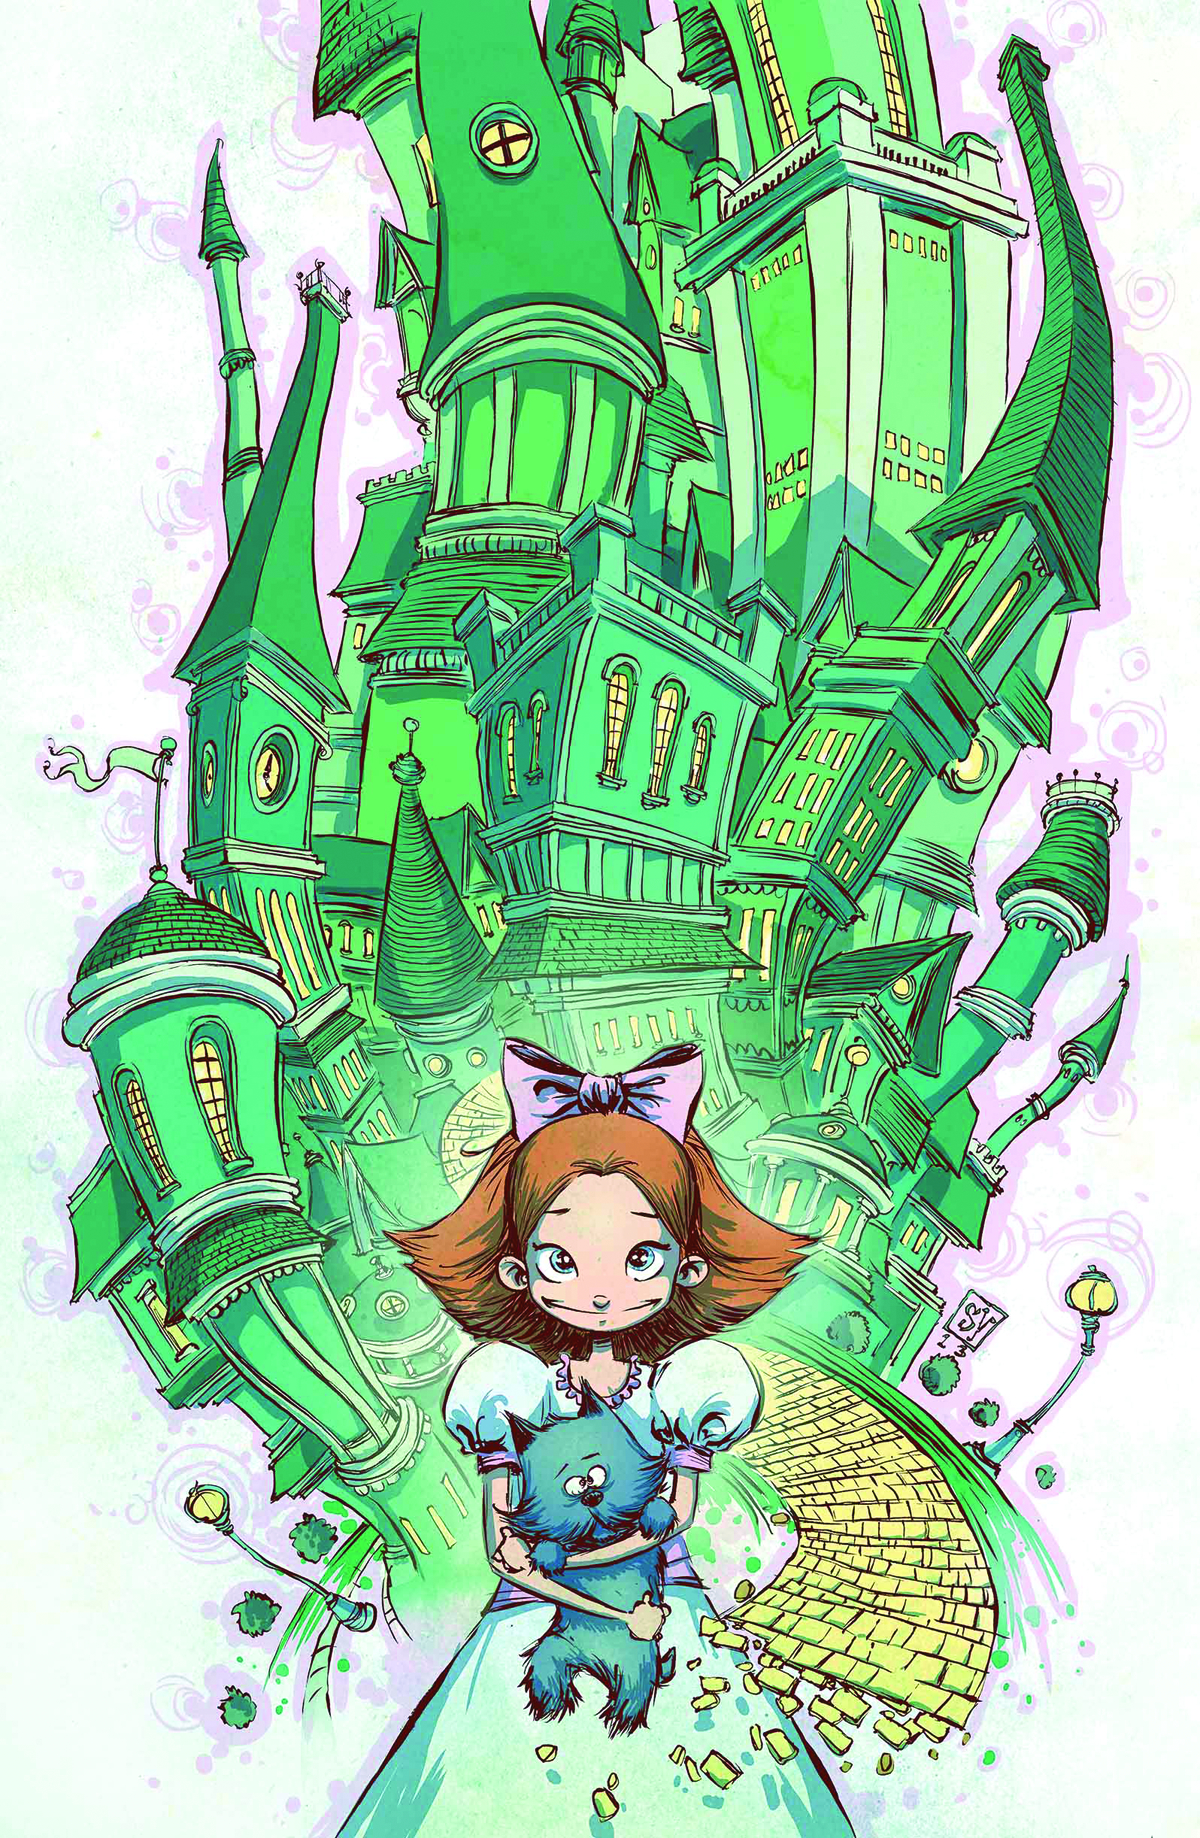 EMERALD CITY OF OZ #1 (OF 5)